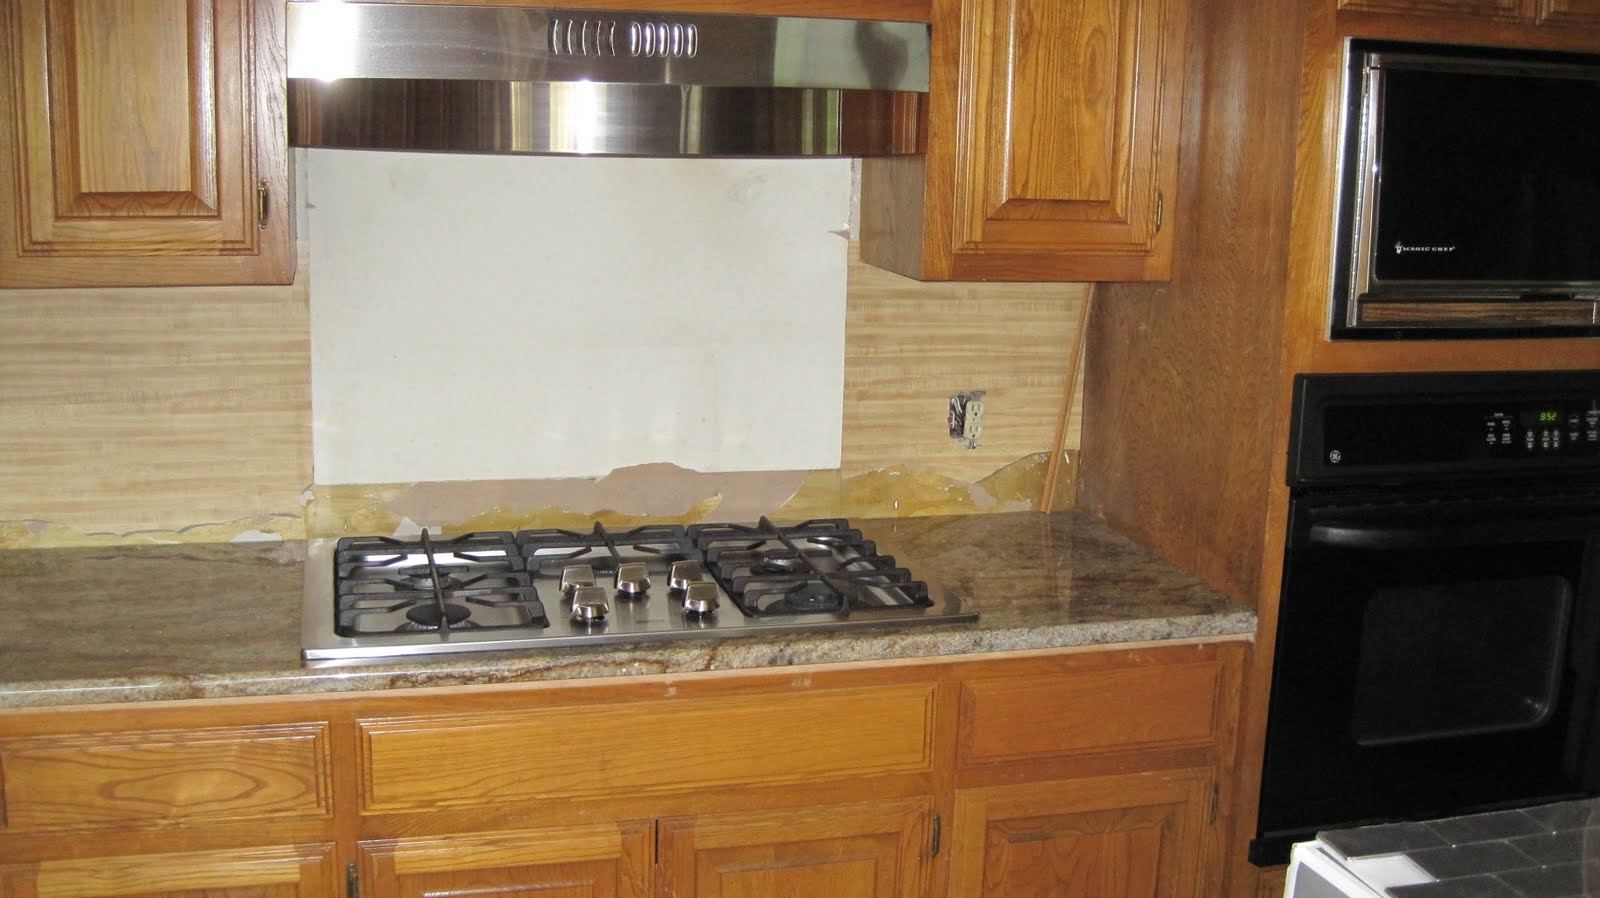 Formica Kitchen Countertop with Backsplash